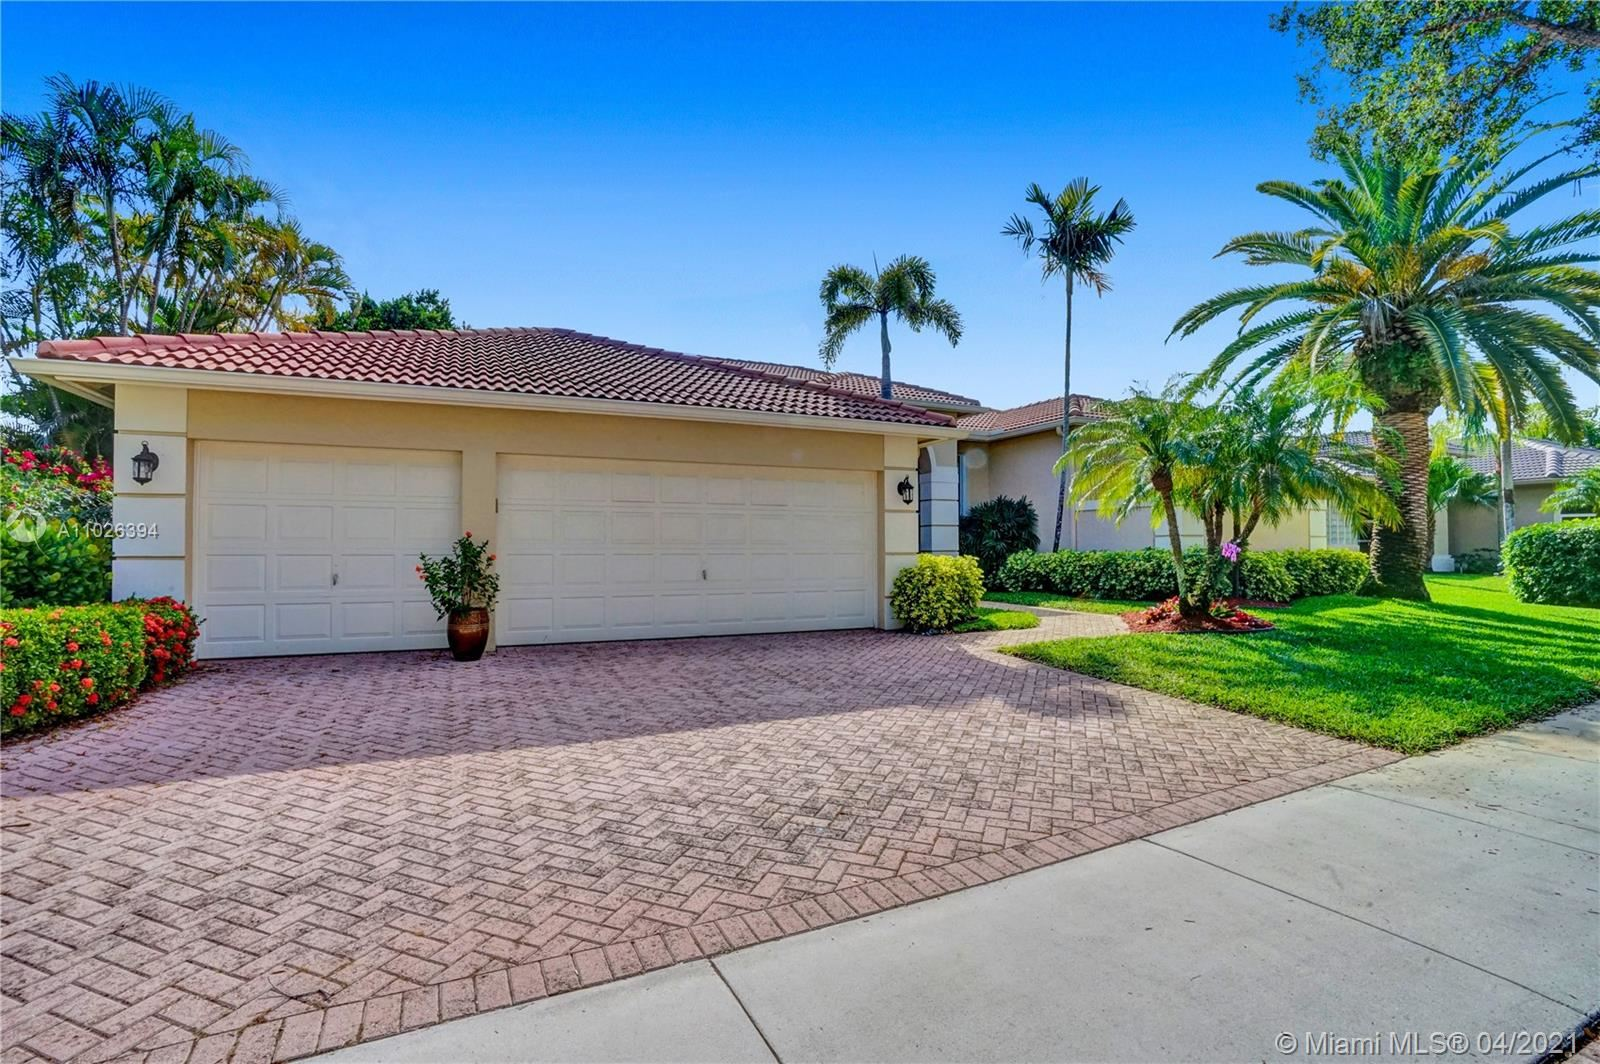 225 Landings Blvd, Weston, FL 33327 - #: A11026394